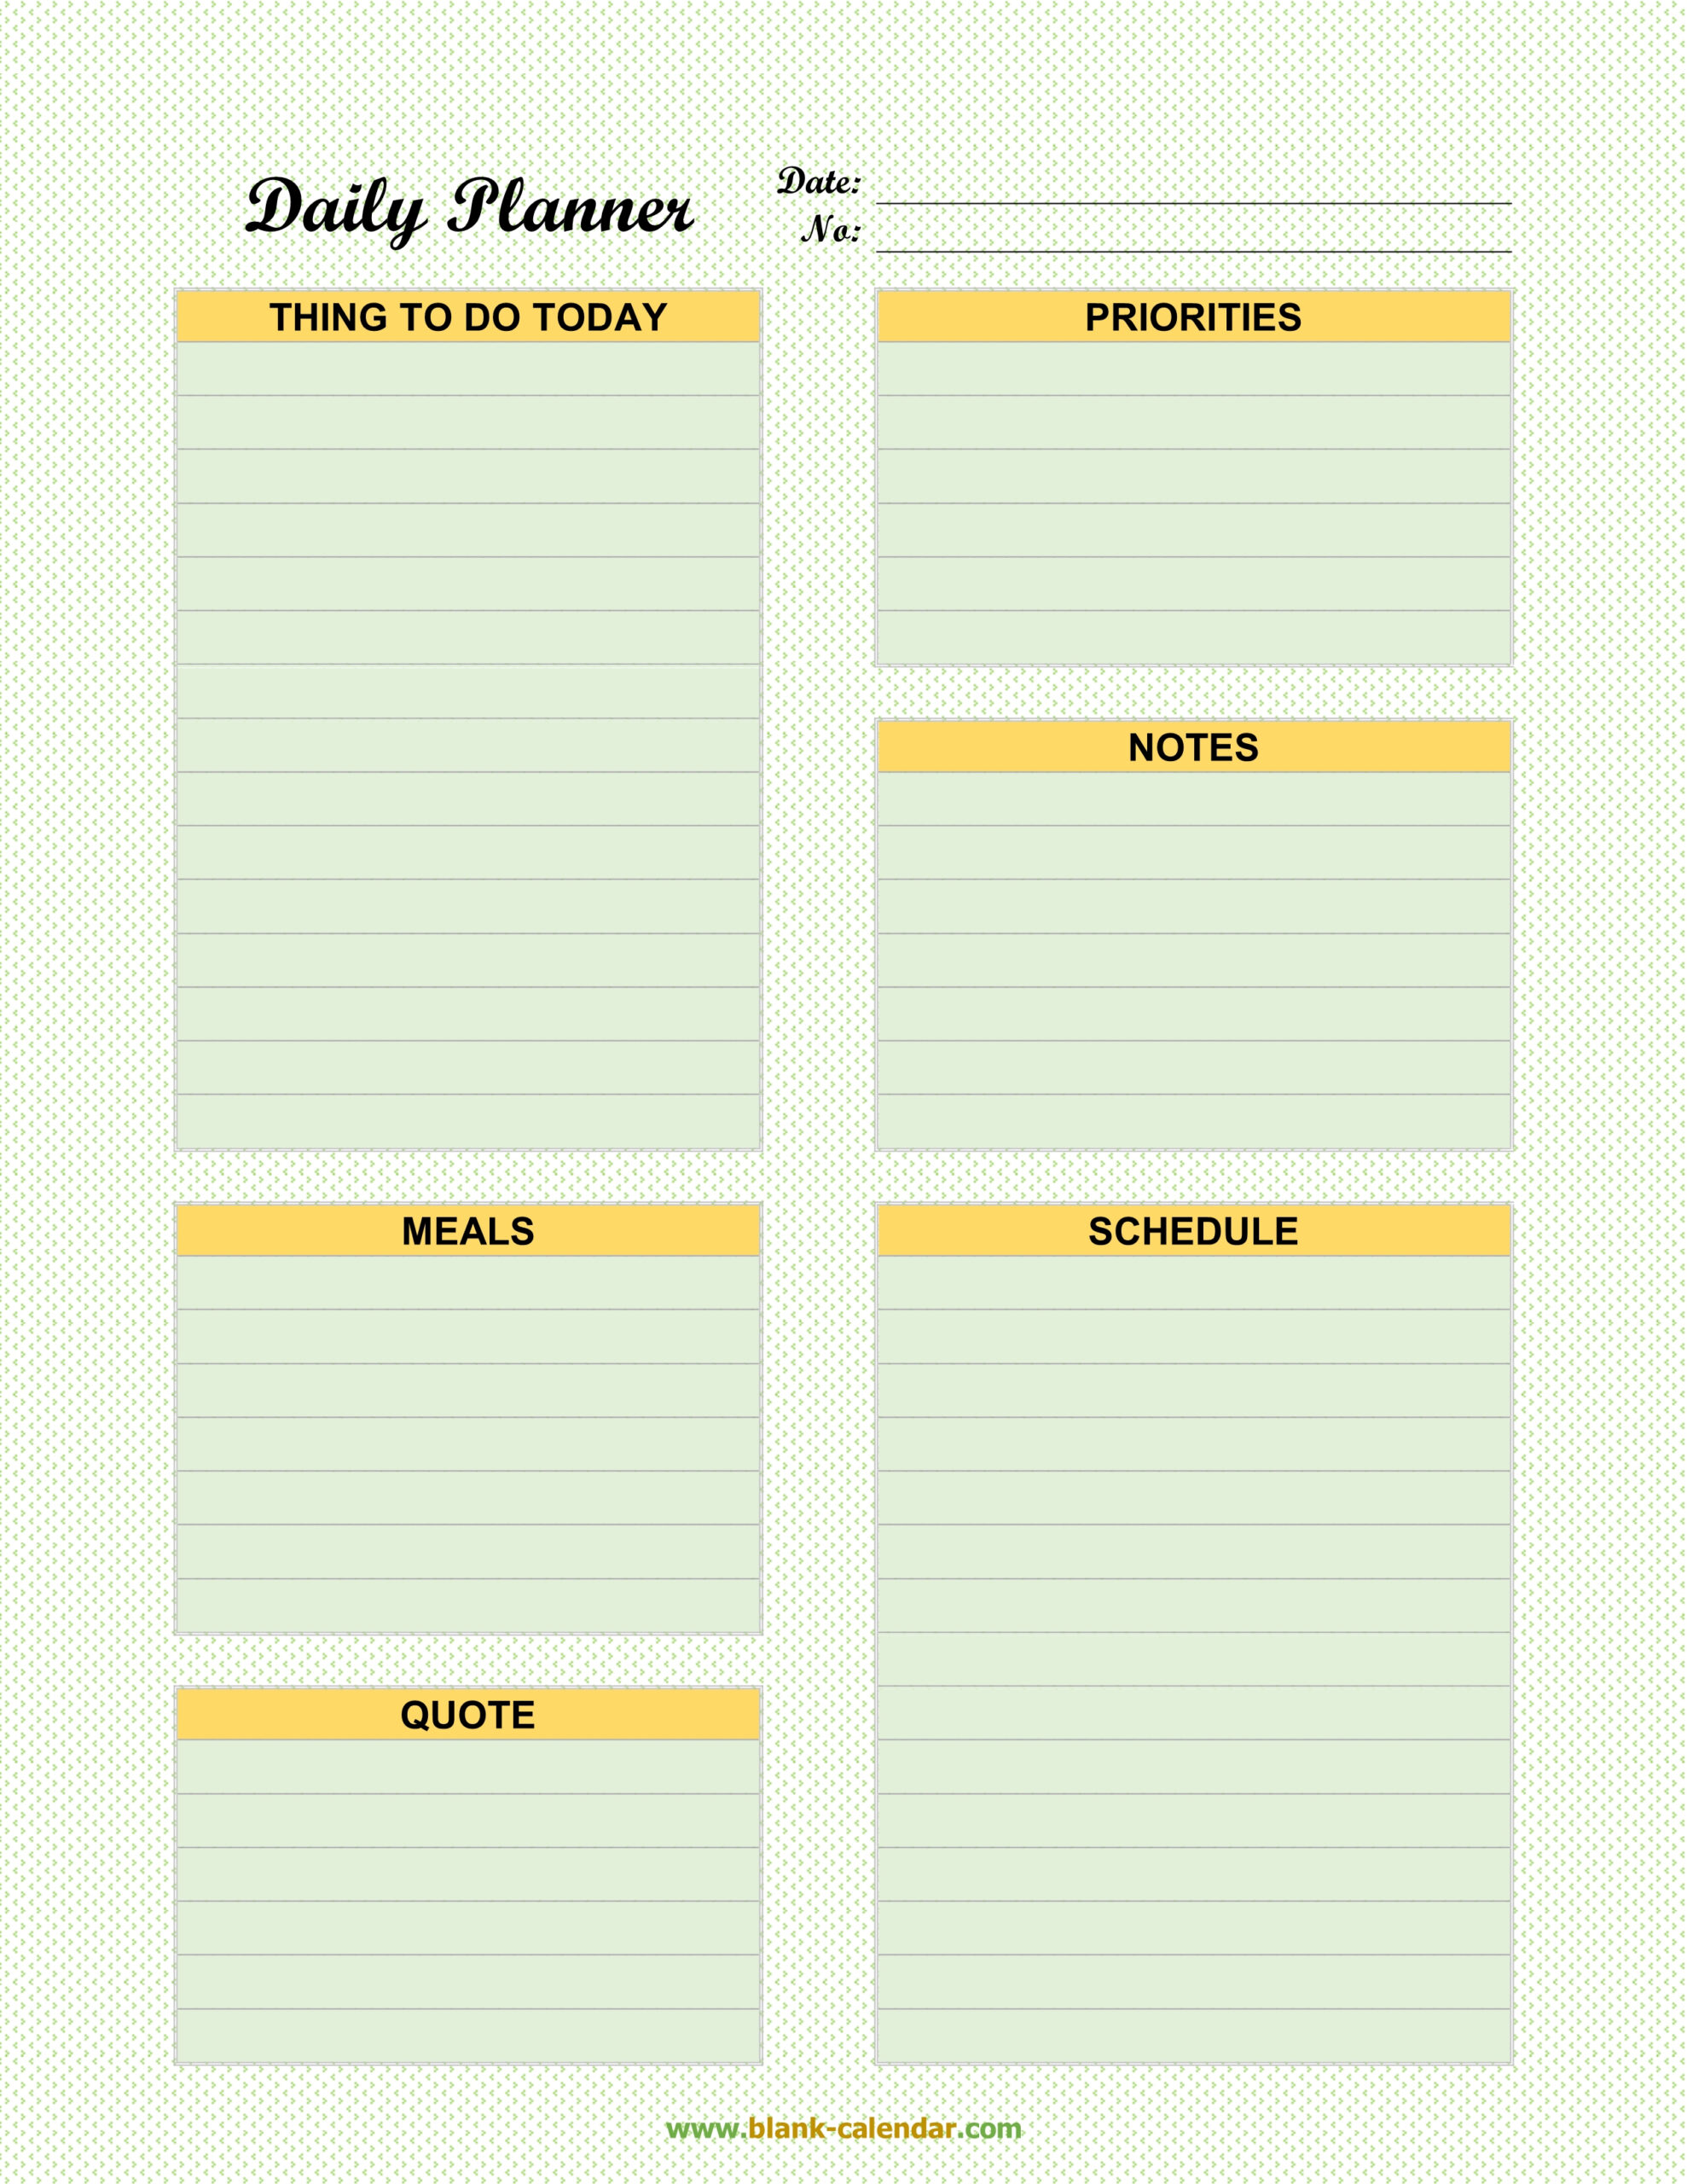 Daily Planner Templates (Word, Excel, Pdf) with Excel Day Planner